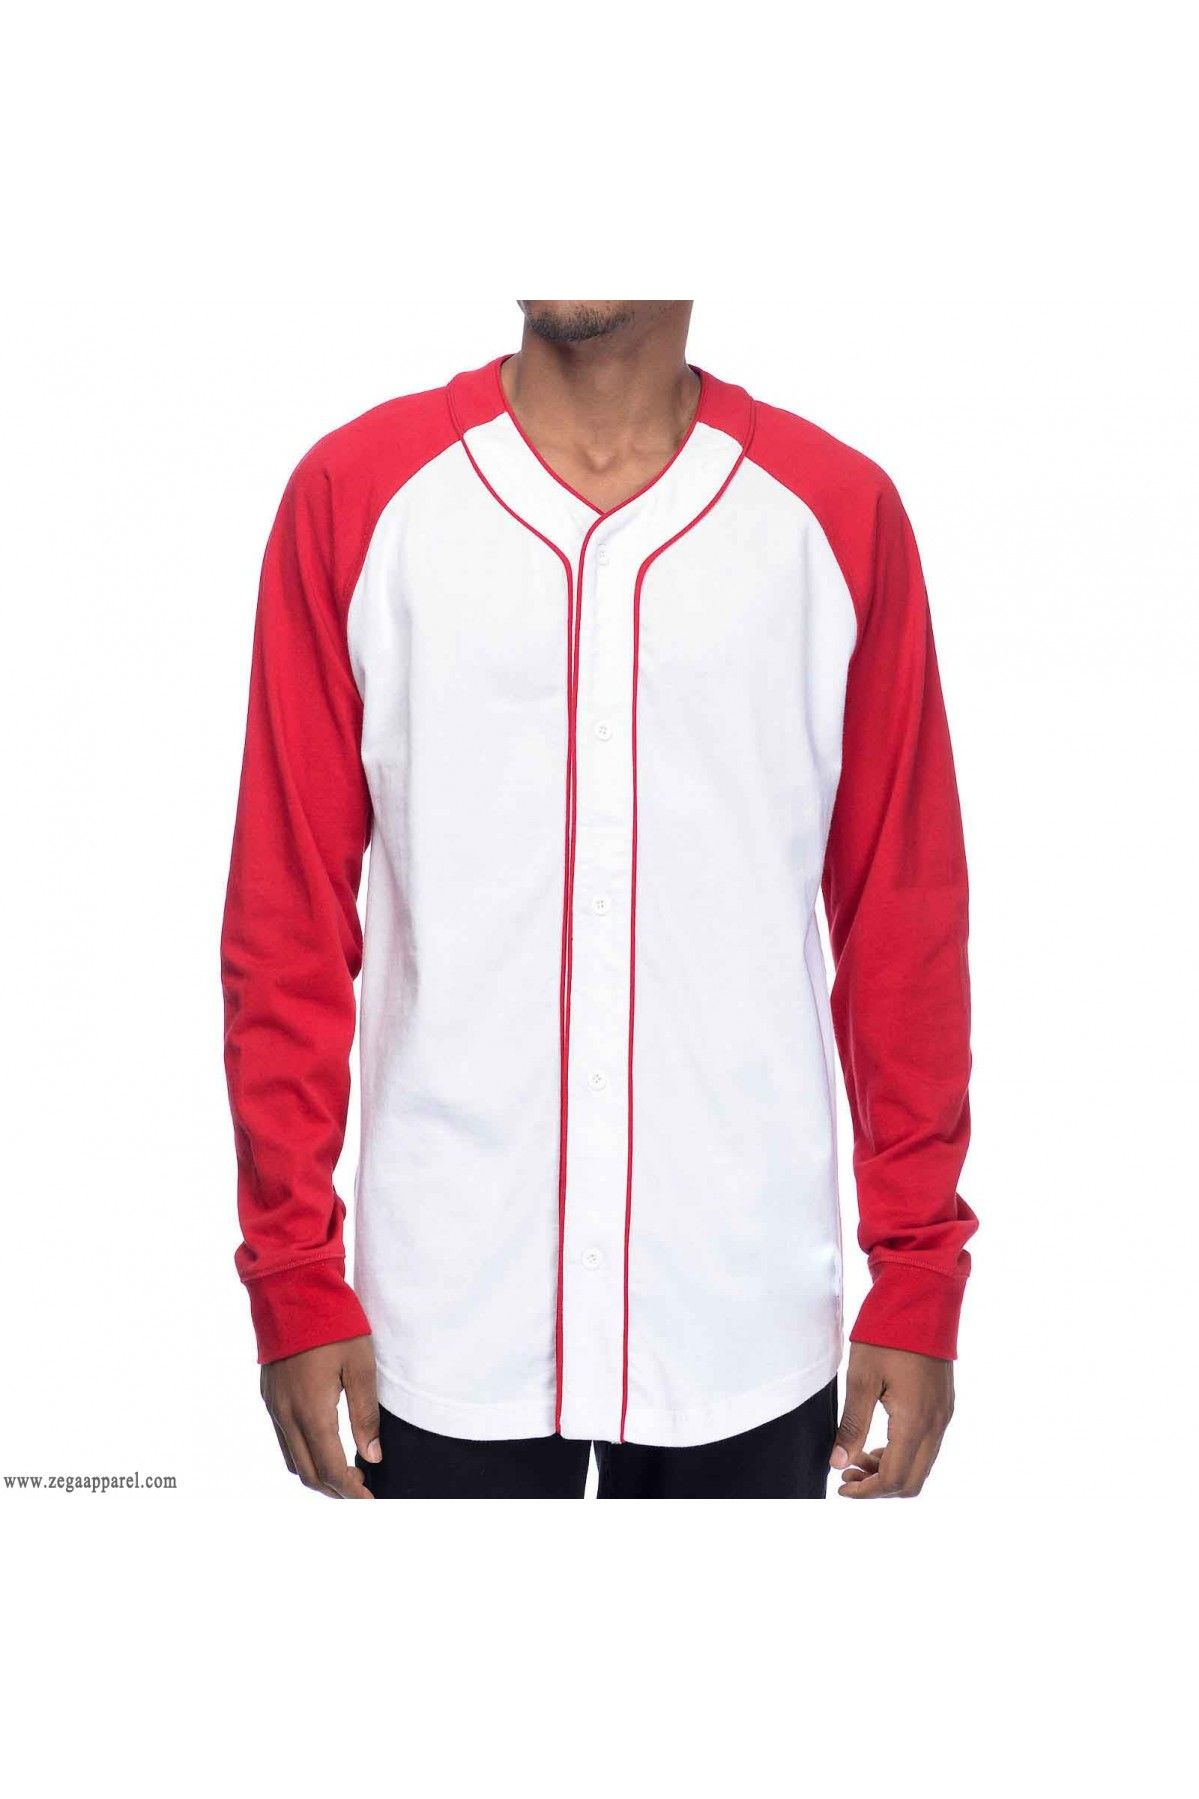 4bb337d1 The Custom Made Zega Apparel Cut and Sew Long Sleeve Baseball Jerseys are  made to order from the start, customers can have any sort of customization  in any ...